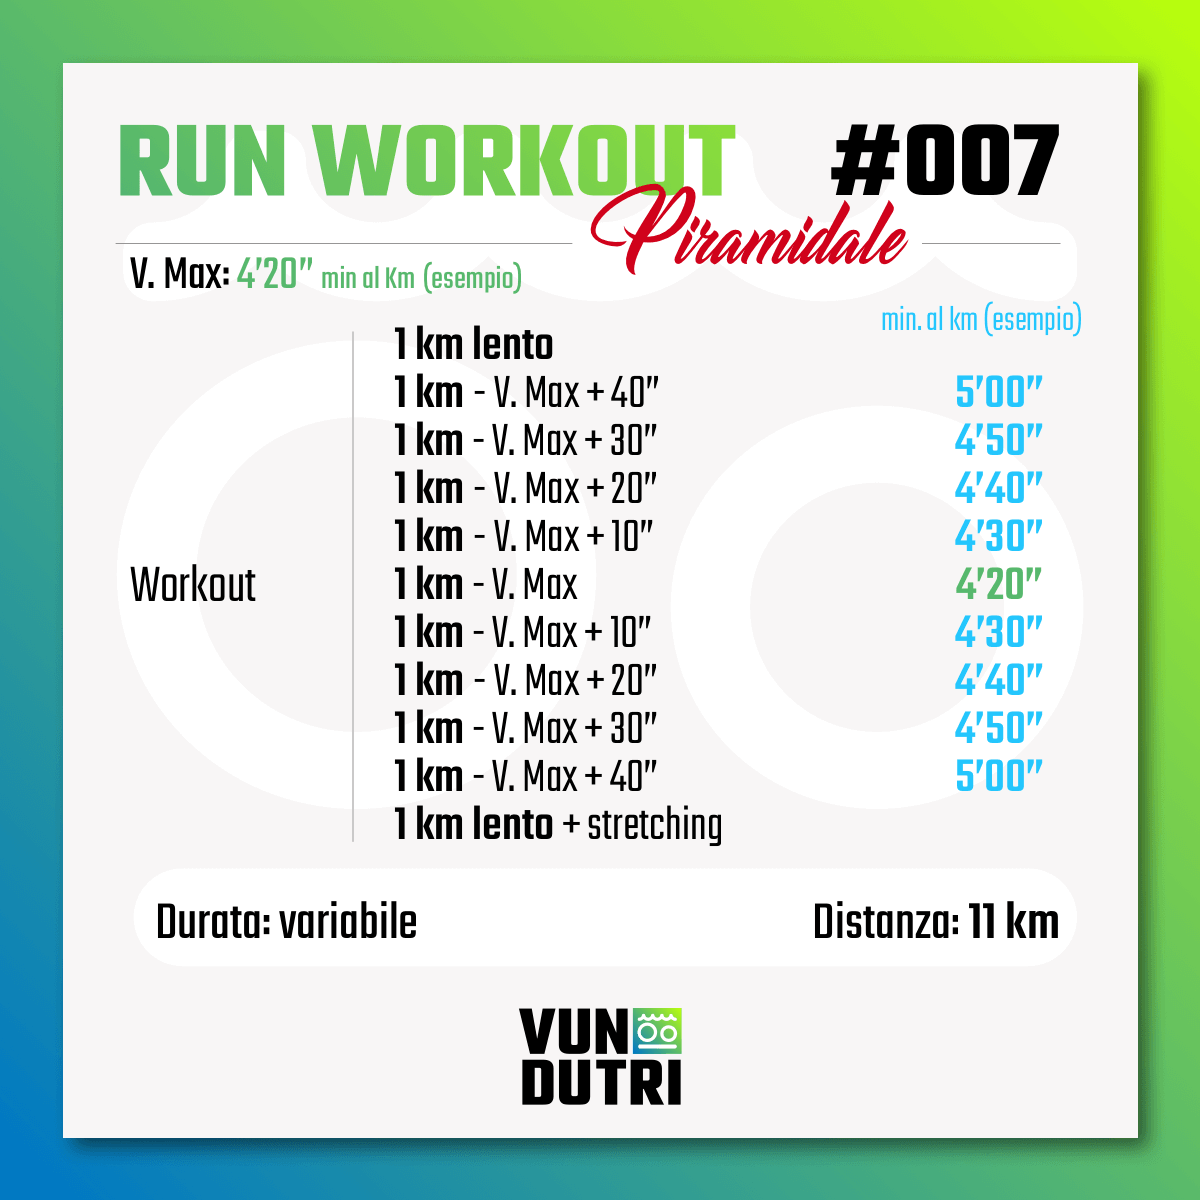 Run Workout 007 - piramidale